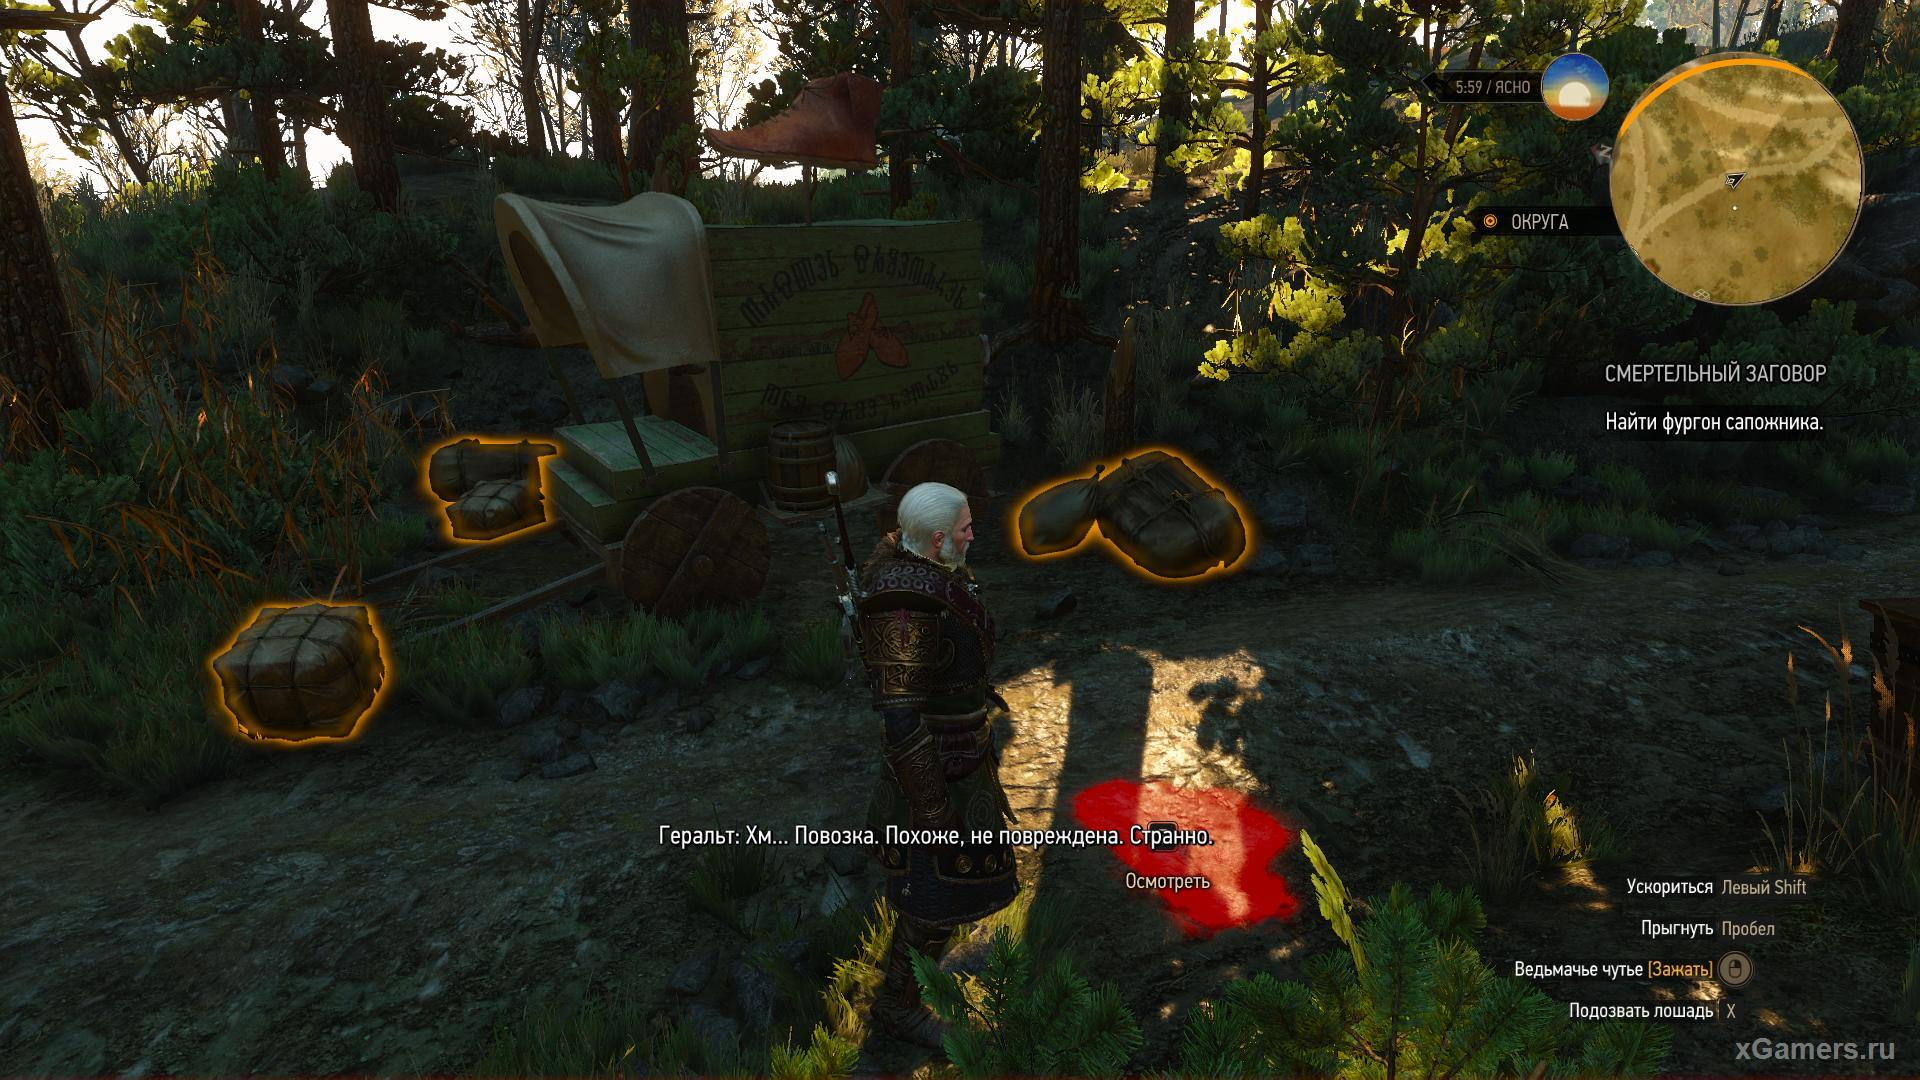 Tips for completing the quest:A Deadly Plot - The Witcher 3